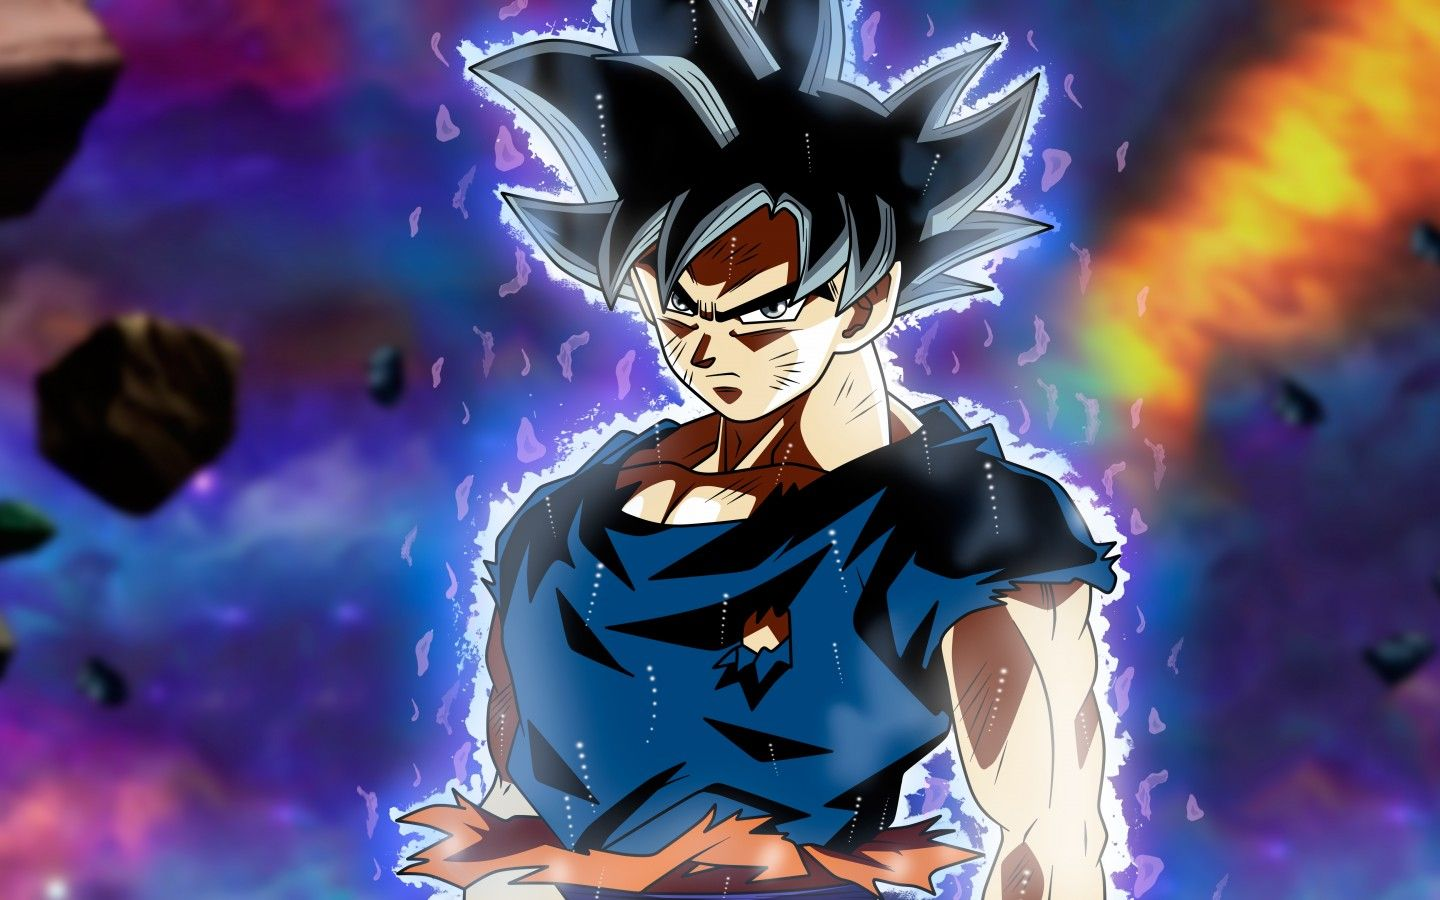 Best Dragon Ball Super Wallpapers Hd Resolution Free Download For Your Desktop Wallpapers We P Dragon Ball Super Wallpapers Dragon Ball Dragon Ball Wallpapers